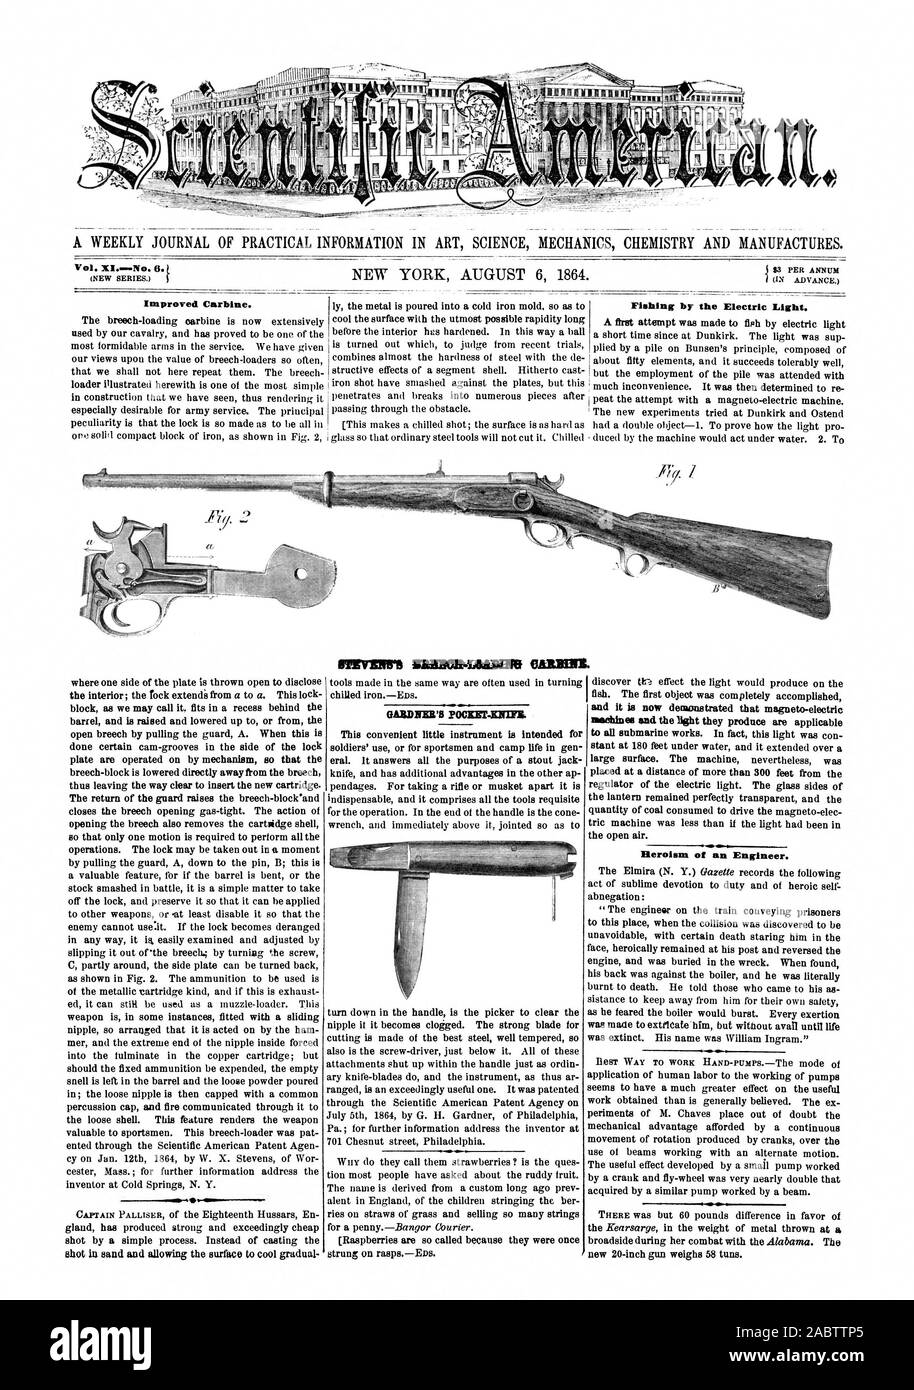 $3 PER ANNUM (IN ADVANCE.) Improved Carbine. Fishing by the Electric Eight. IRIMMUNAD010 OAEBBIL shot in sand and allowing the surface to cool gradual and it is now demonstrated that magneto-electric machines and the light they produce are applicable to all submarine works. In fact this light was con Heroism of an Engineer. new 20-inch gun weighs 58 tuns., scientific american, 64-08-06 Stock Photo